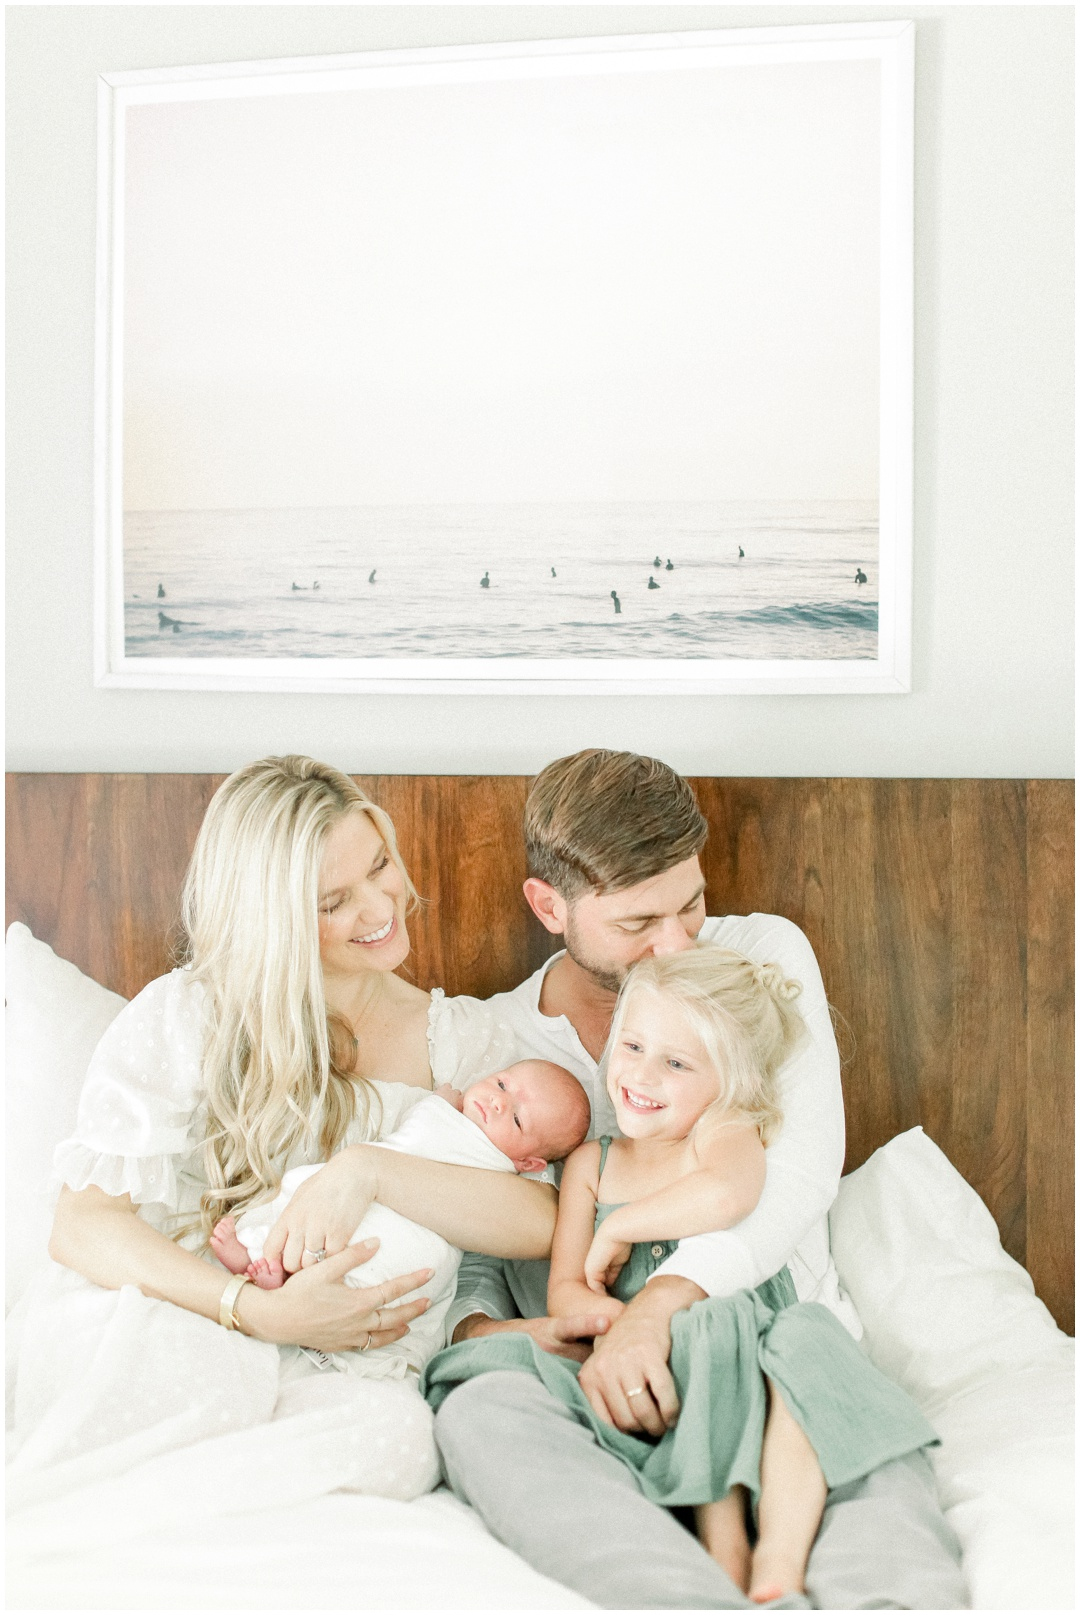 Newport_Beach_Newborn_Light_Airy_Natural_Photographer_Newport_Beach_Photographer_Orange_County_Family_Photographer_Cori_Kleckner_Photography_Newport_Beach_Photographer_Jacobs_Shelly__4059.jpg